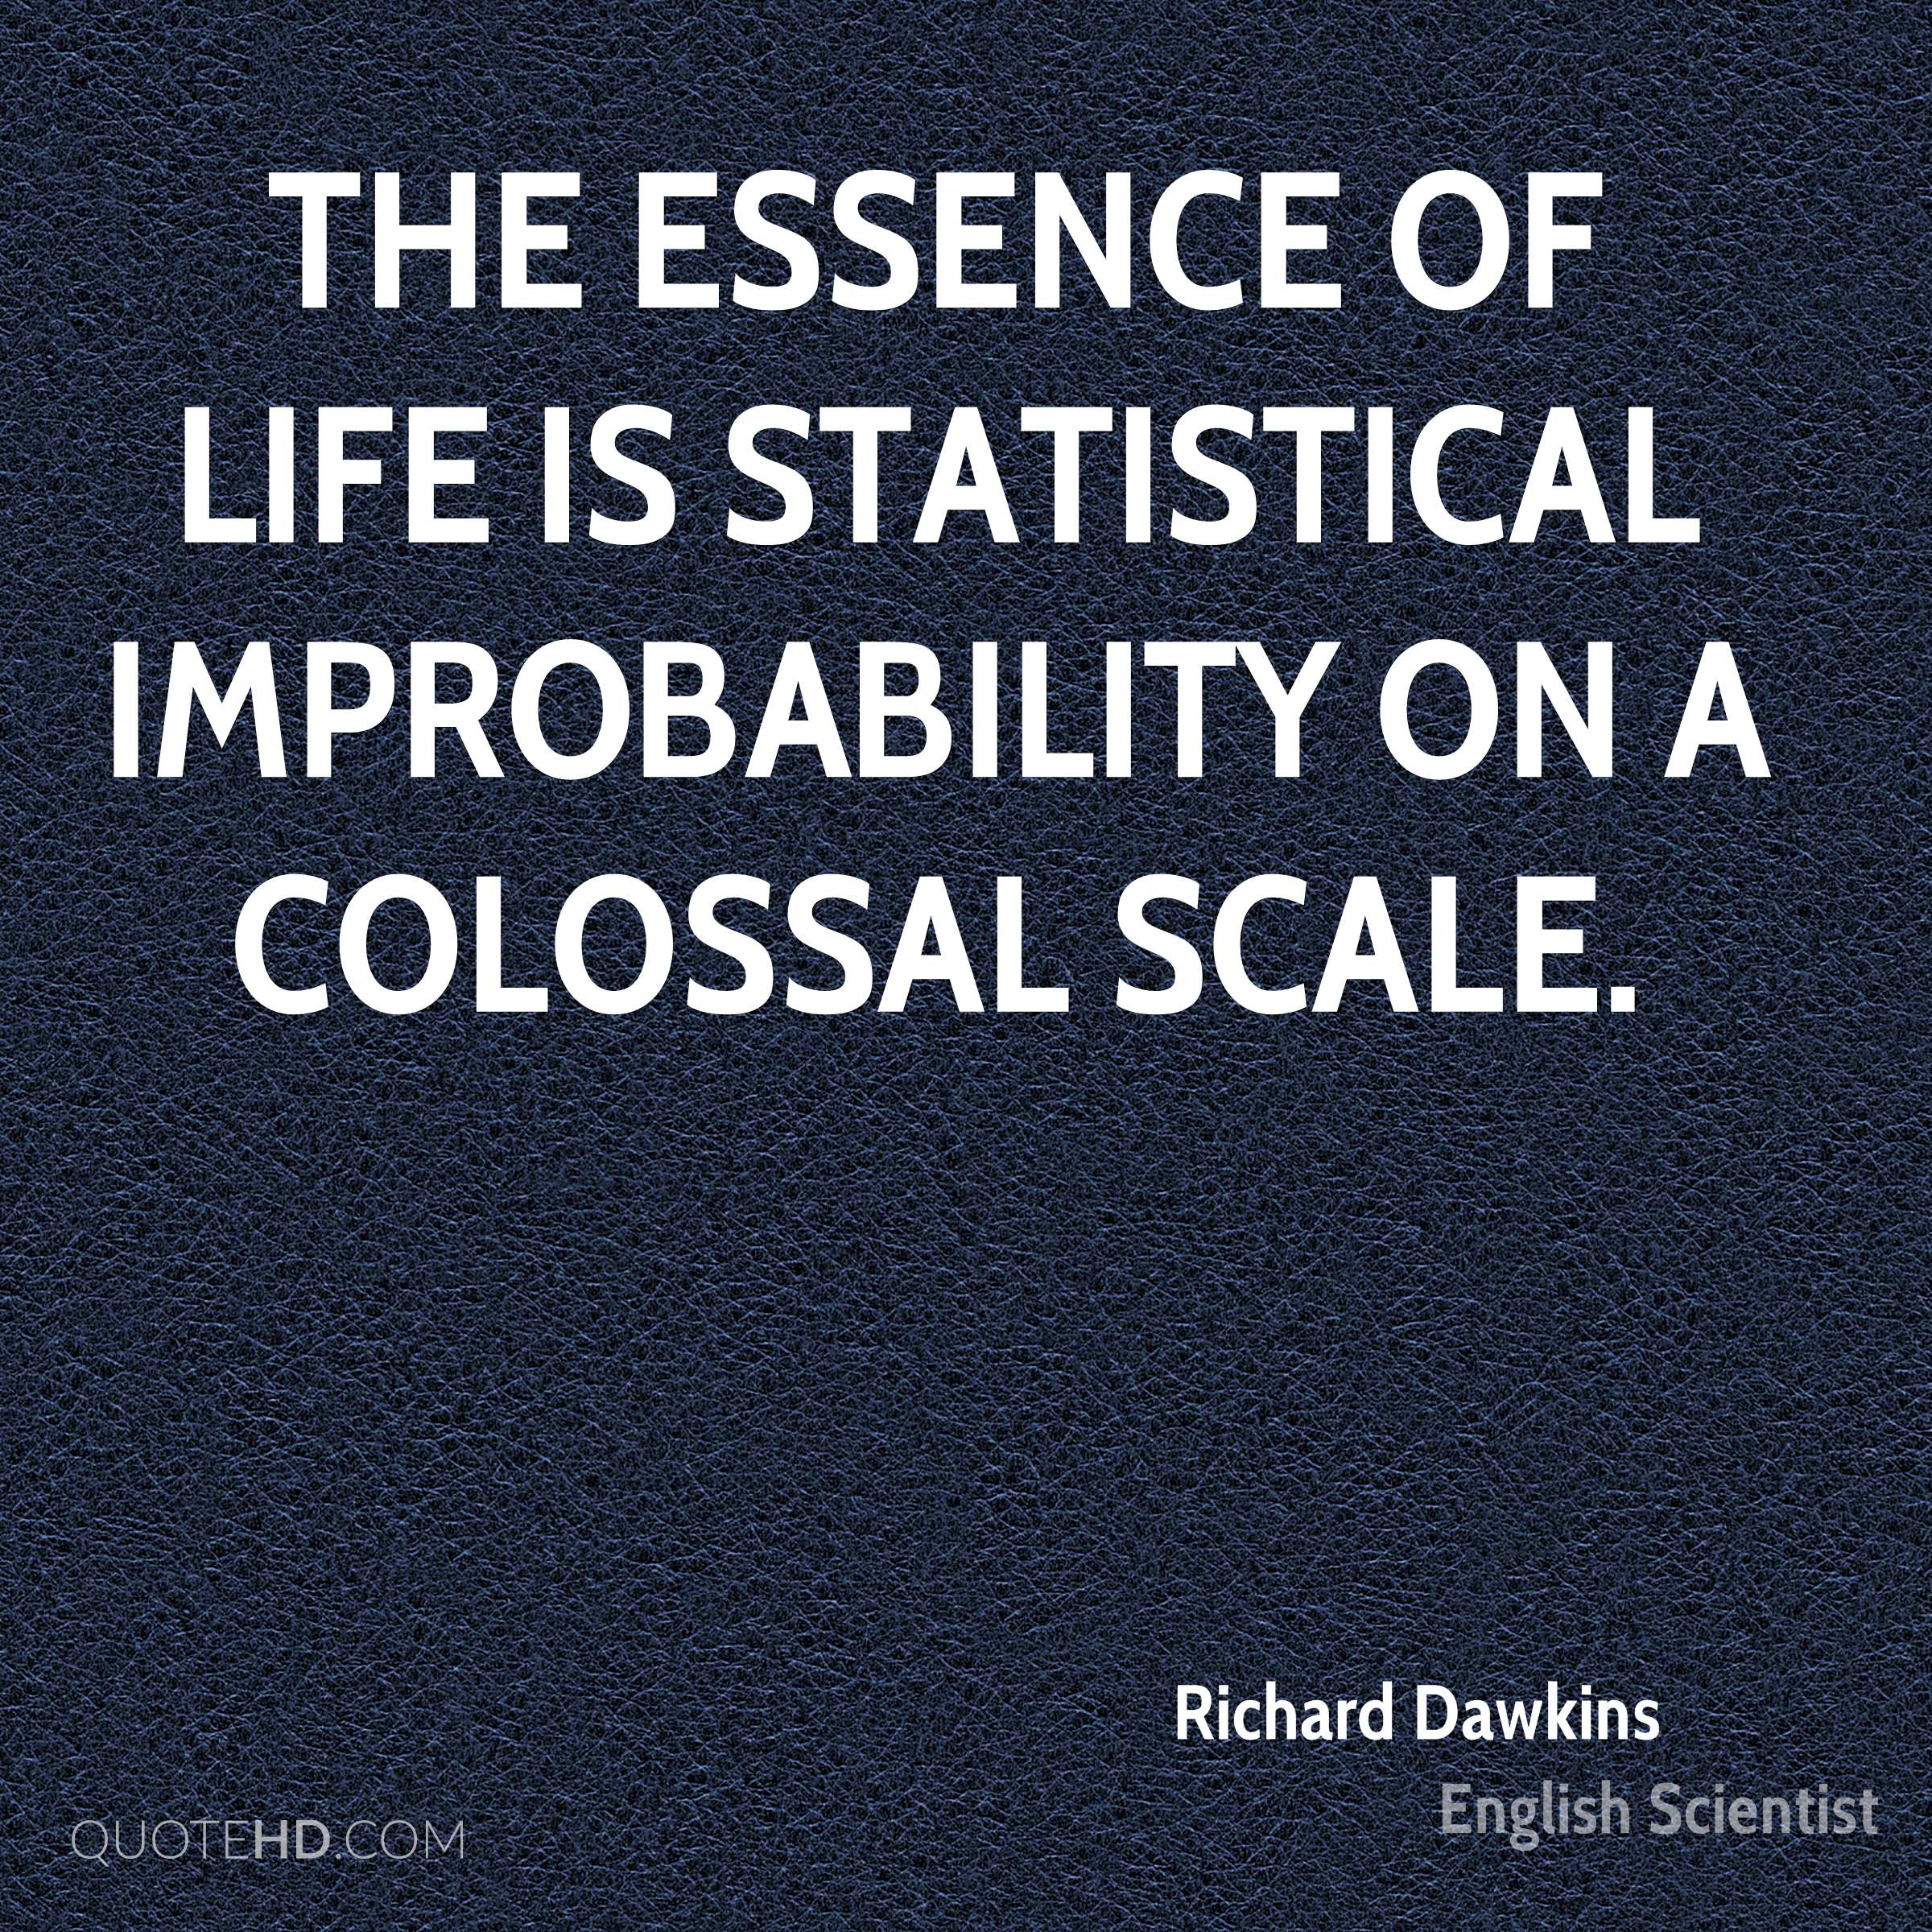 The essence of life is statistical improbability on a colossal scale.